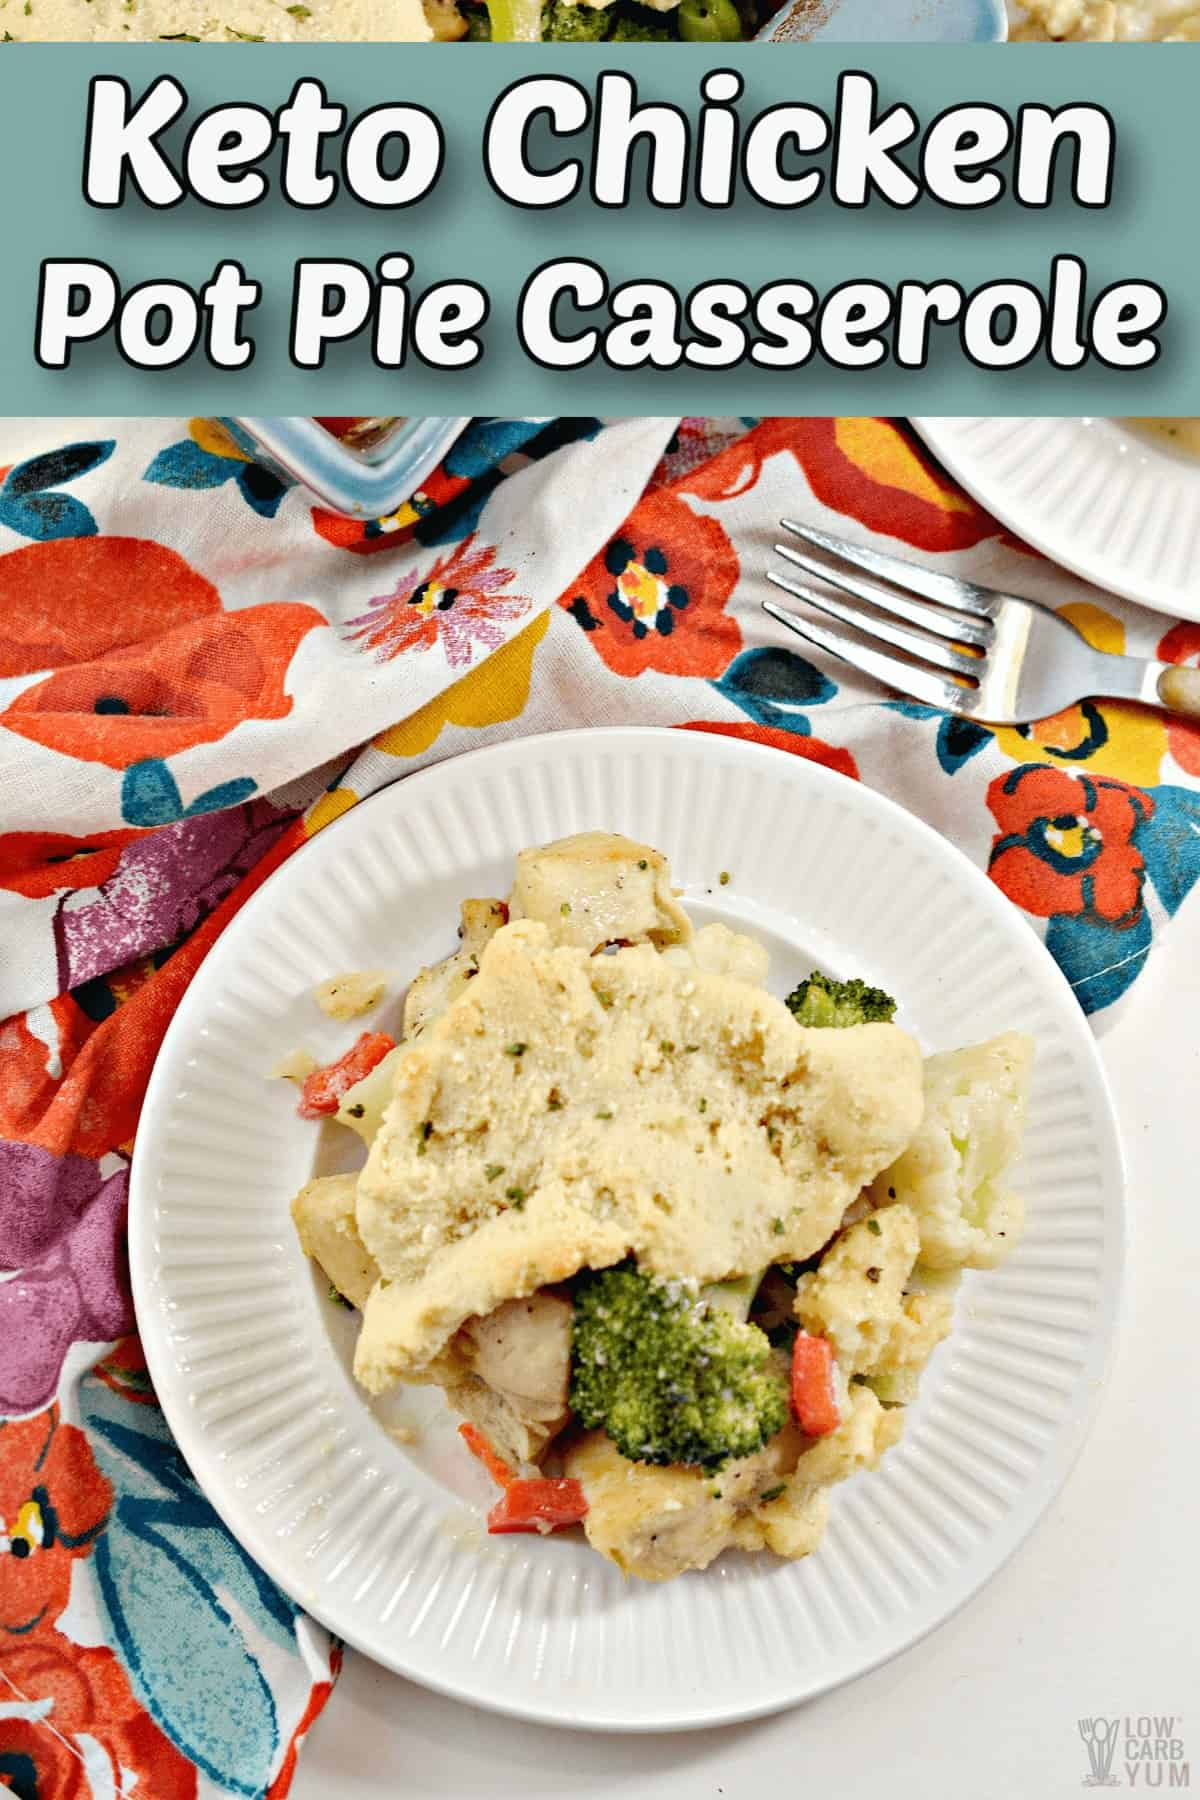 keto chicken pot pie casserole recipe pintrest image